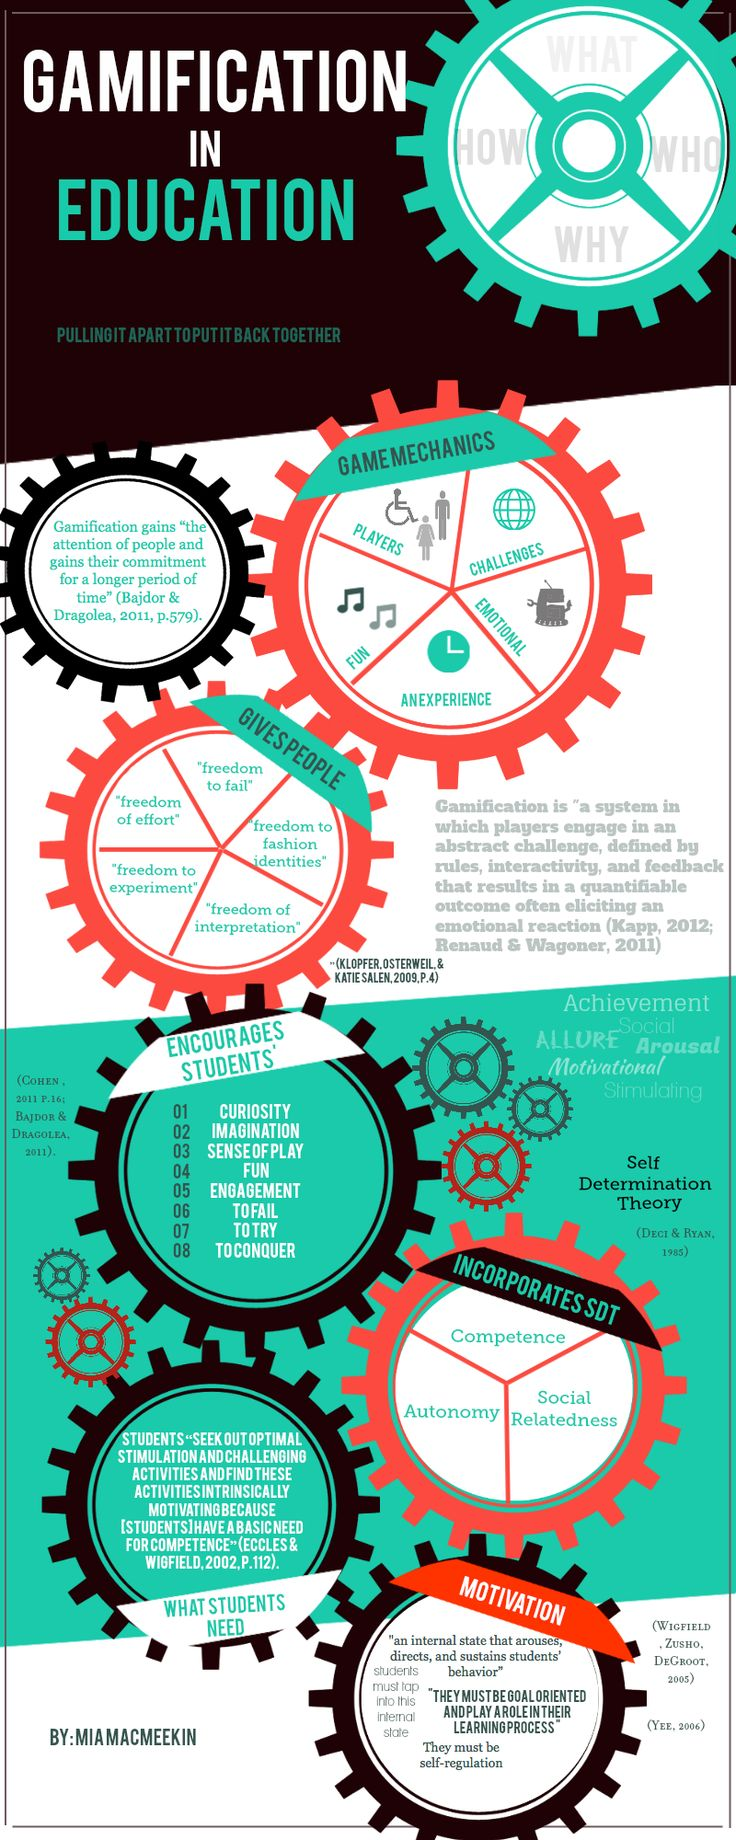 Gamification | Als docent... | Pinterest | Education, Teaching and Learning